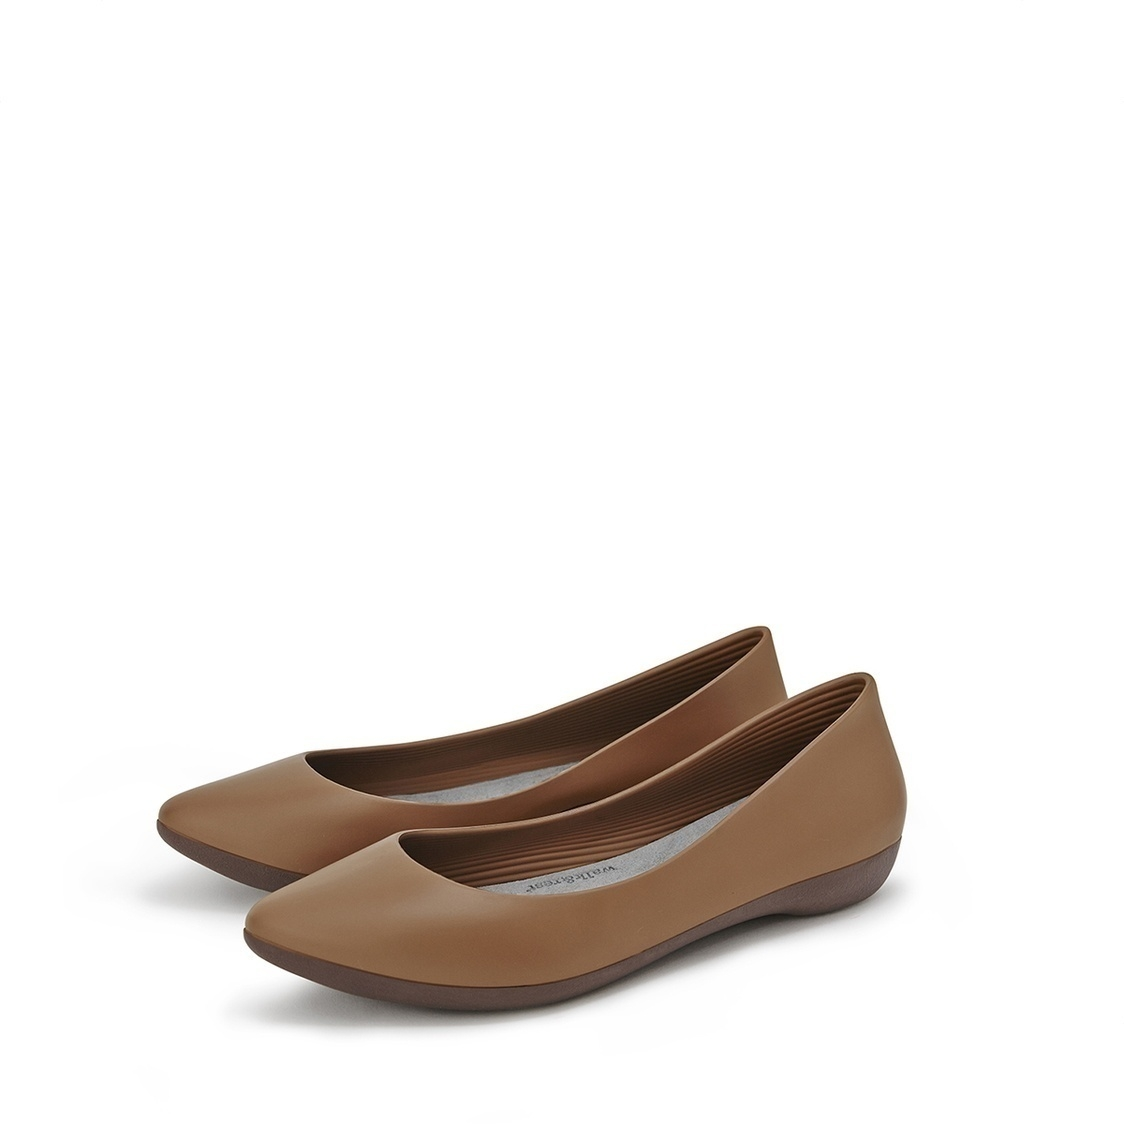 F2 Flat-Rounded Heel height 2cm Camel Brown